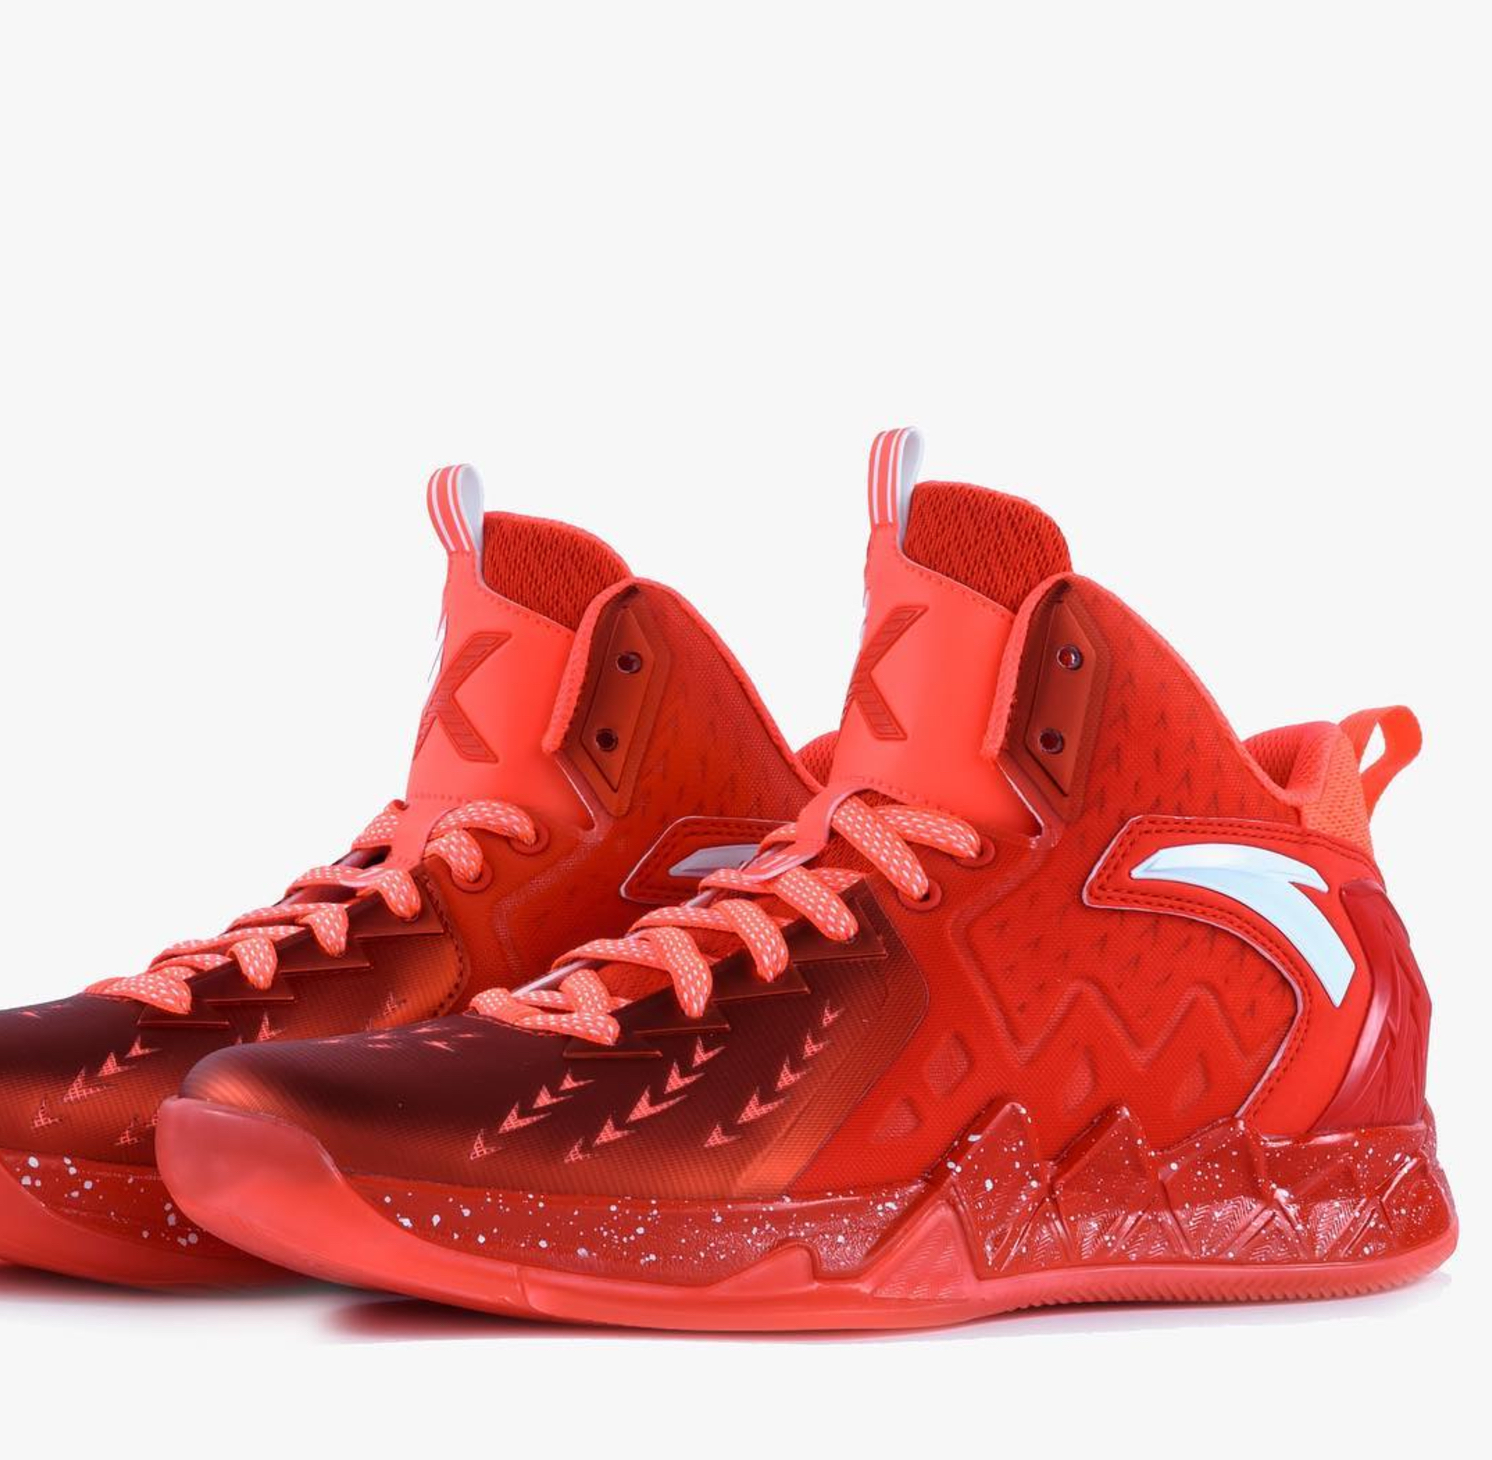 The ANTA KT2 'Code Red' Players Edition